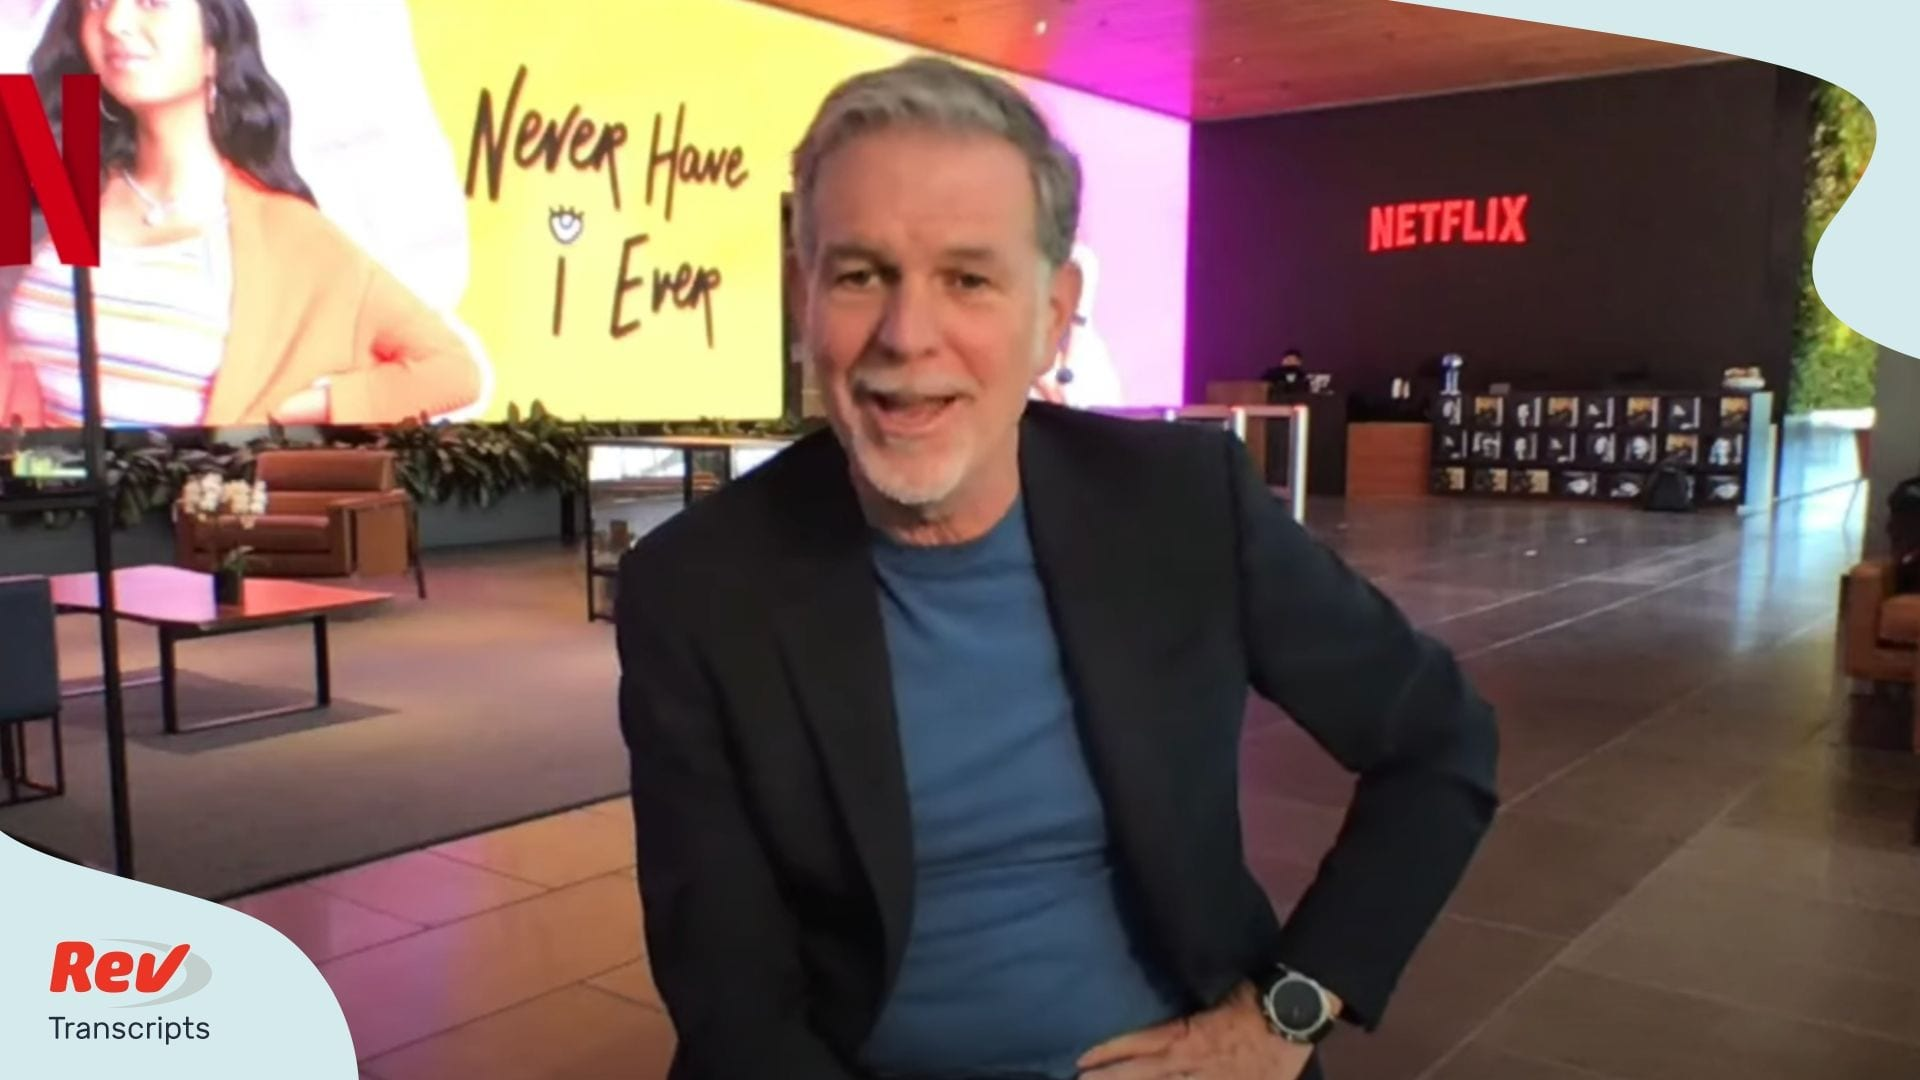 Netflix Earnings Call & Interview Q2 2020